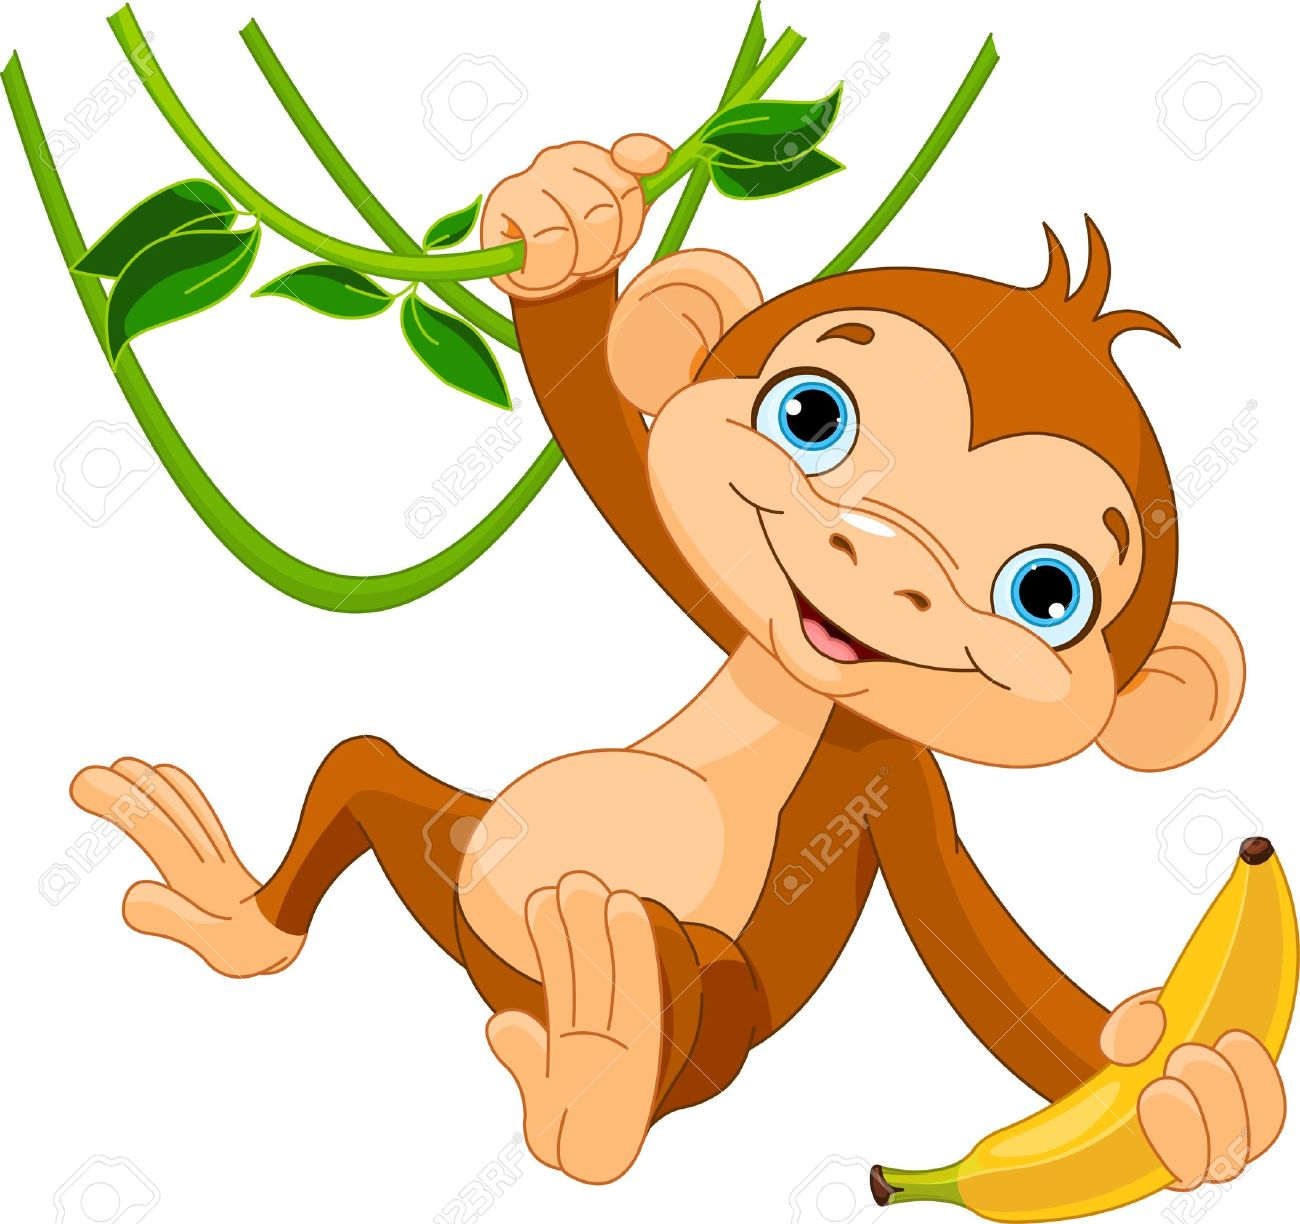 Cute Baby Monkey On A Tree Holding Banana Royalty Free Cliparts Vectors And Stock Illustration Image 17695914 You might also be interested in coloring pages from cartoon monkeys category and preschool animals tag. cute baby monkey on a tree holding banana